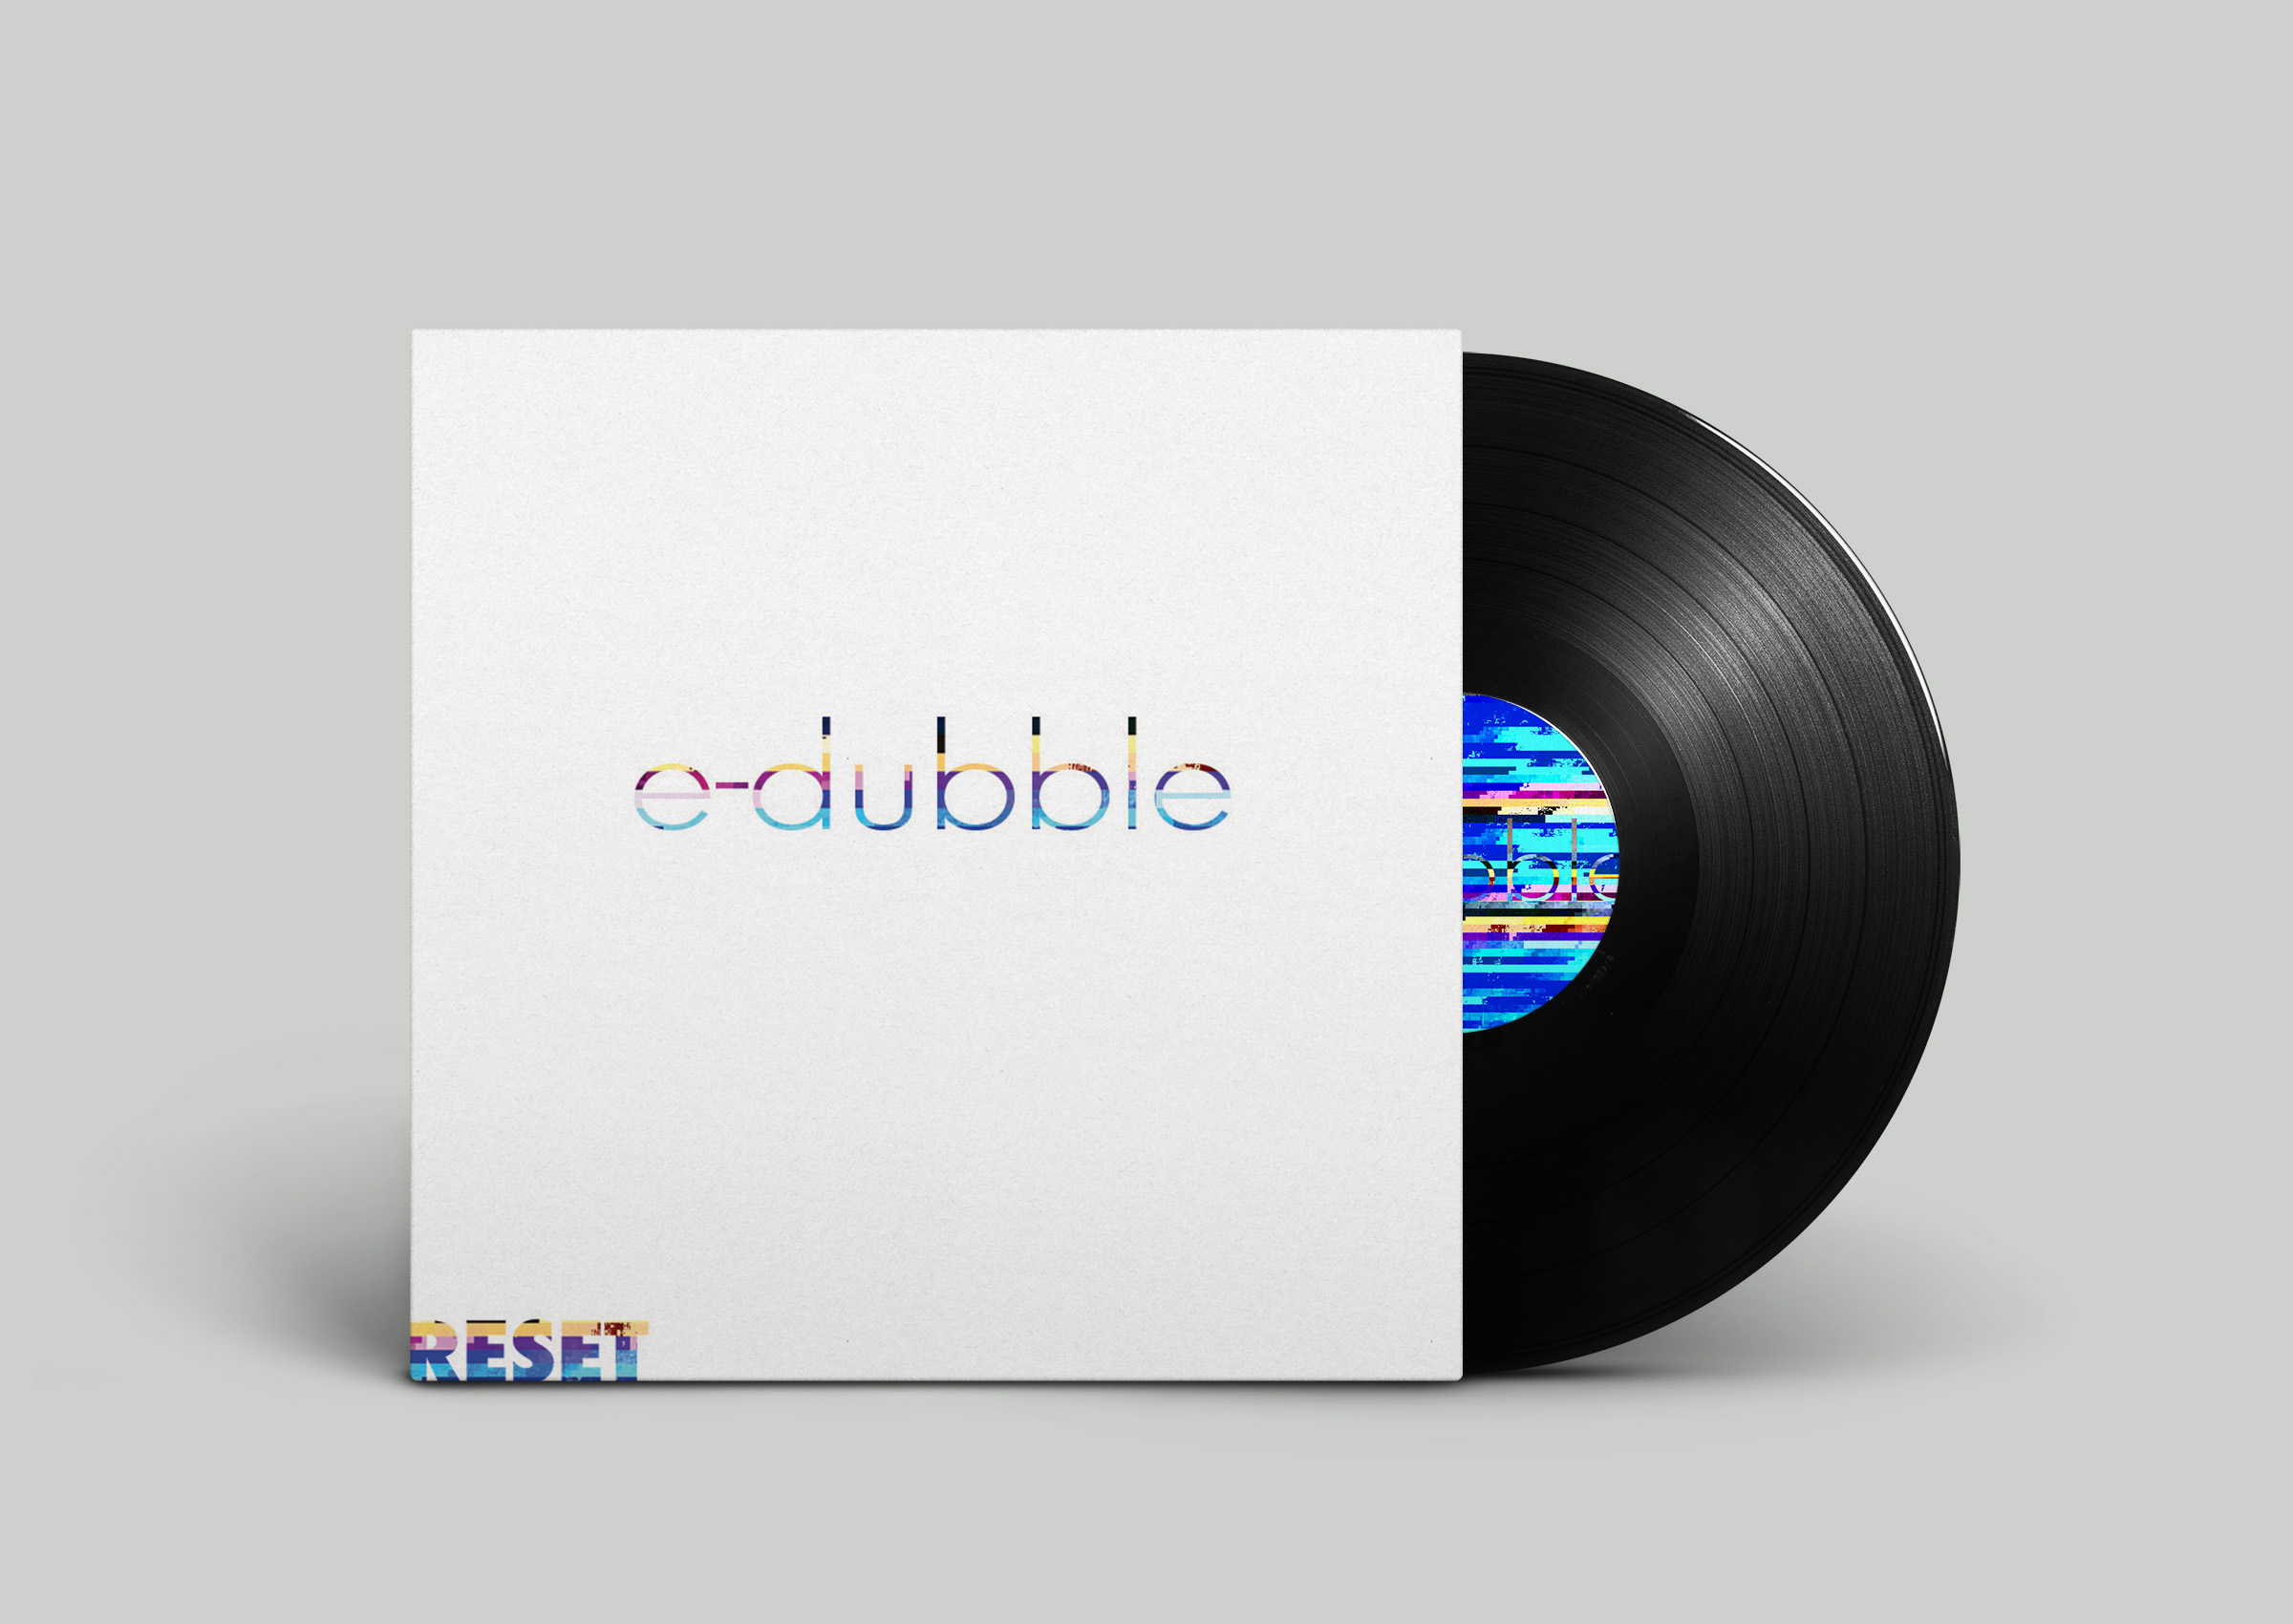 make a glitch album or poster and mock it up for you